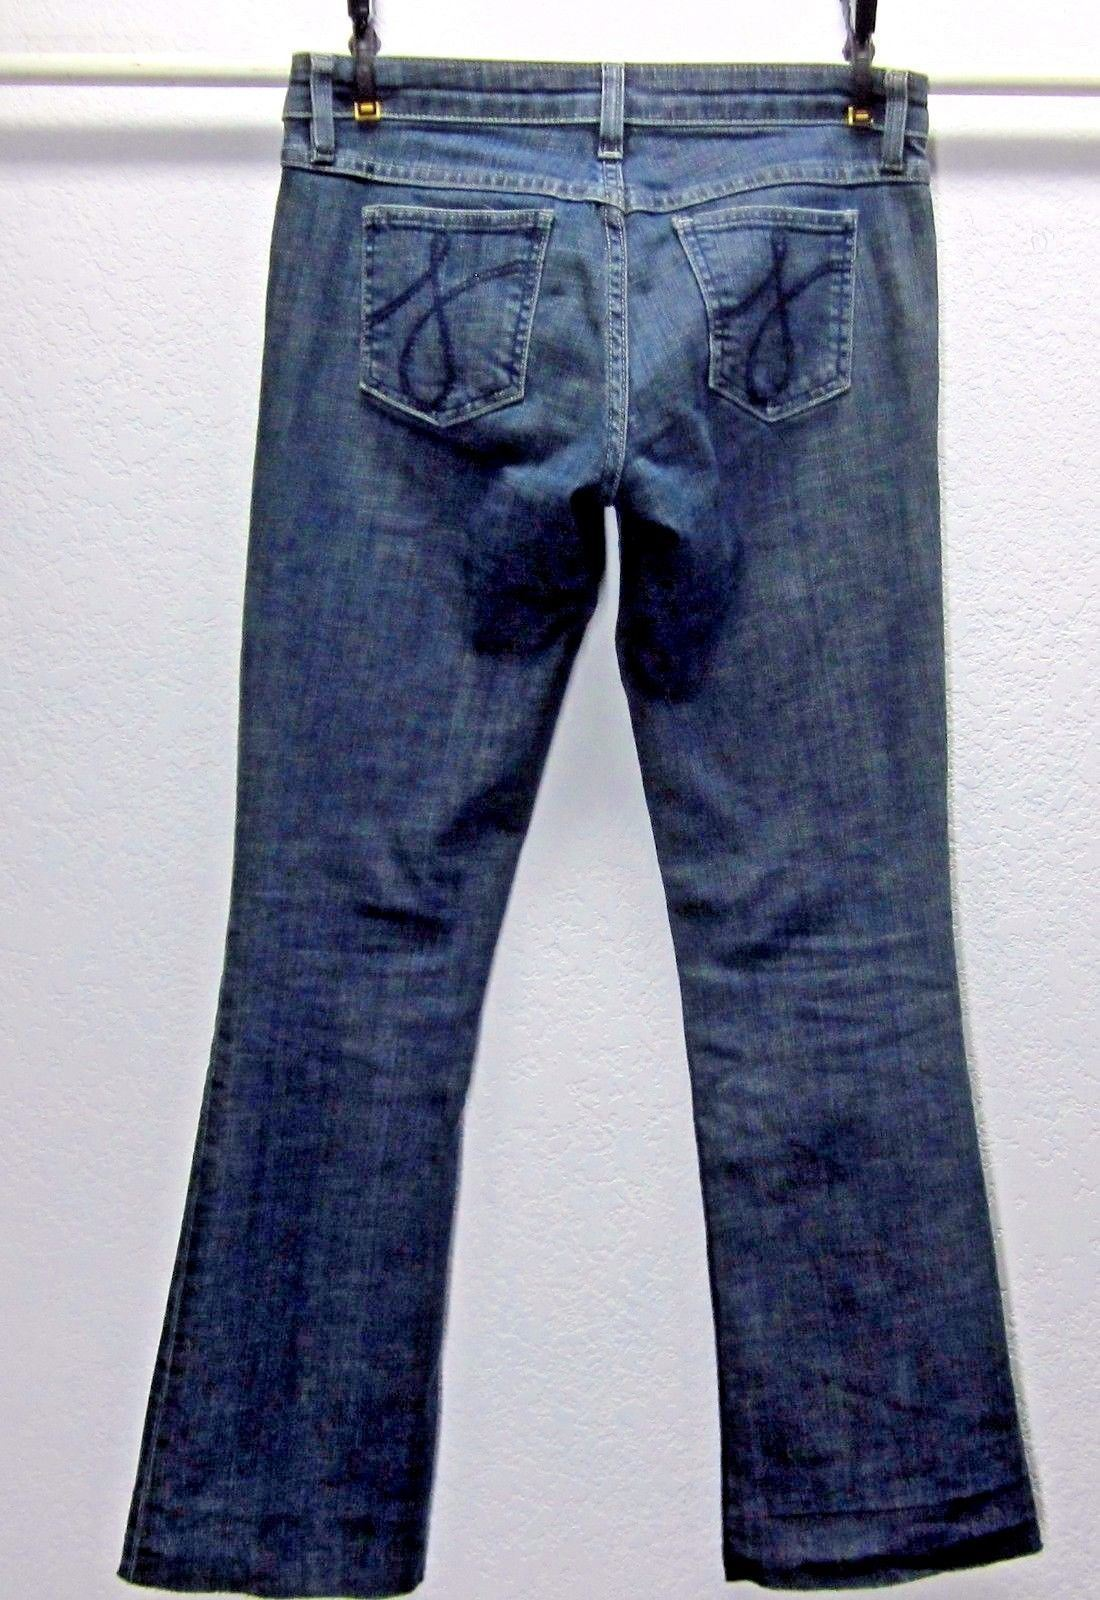 JUICY COUTURE THE CALI WOMEN'S BOOT CUT Sz 26 (29x27) DARK STRETCH BLUE JEANS image 2